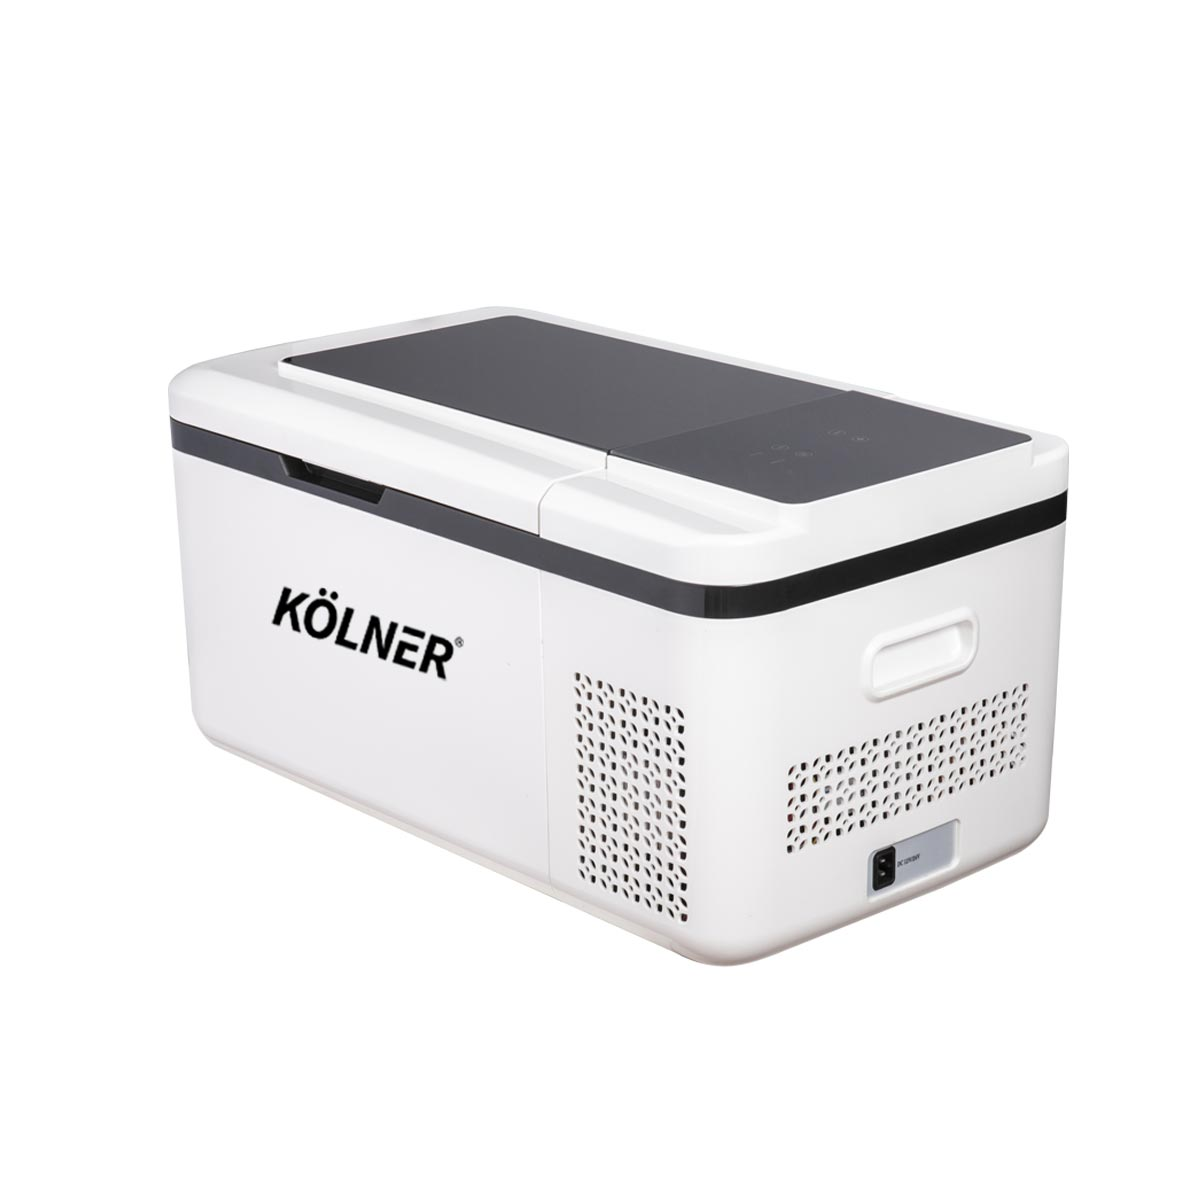 Kolner 20L Portable Fridge Cooler Freezer Camping Refrigerator - White